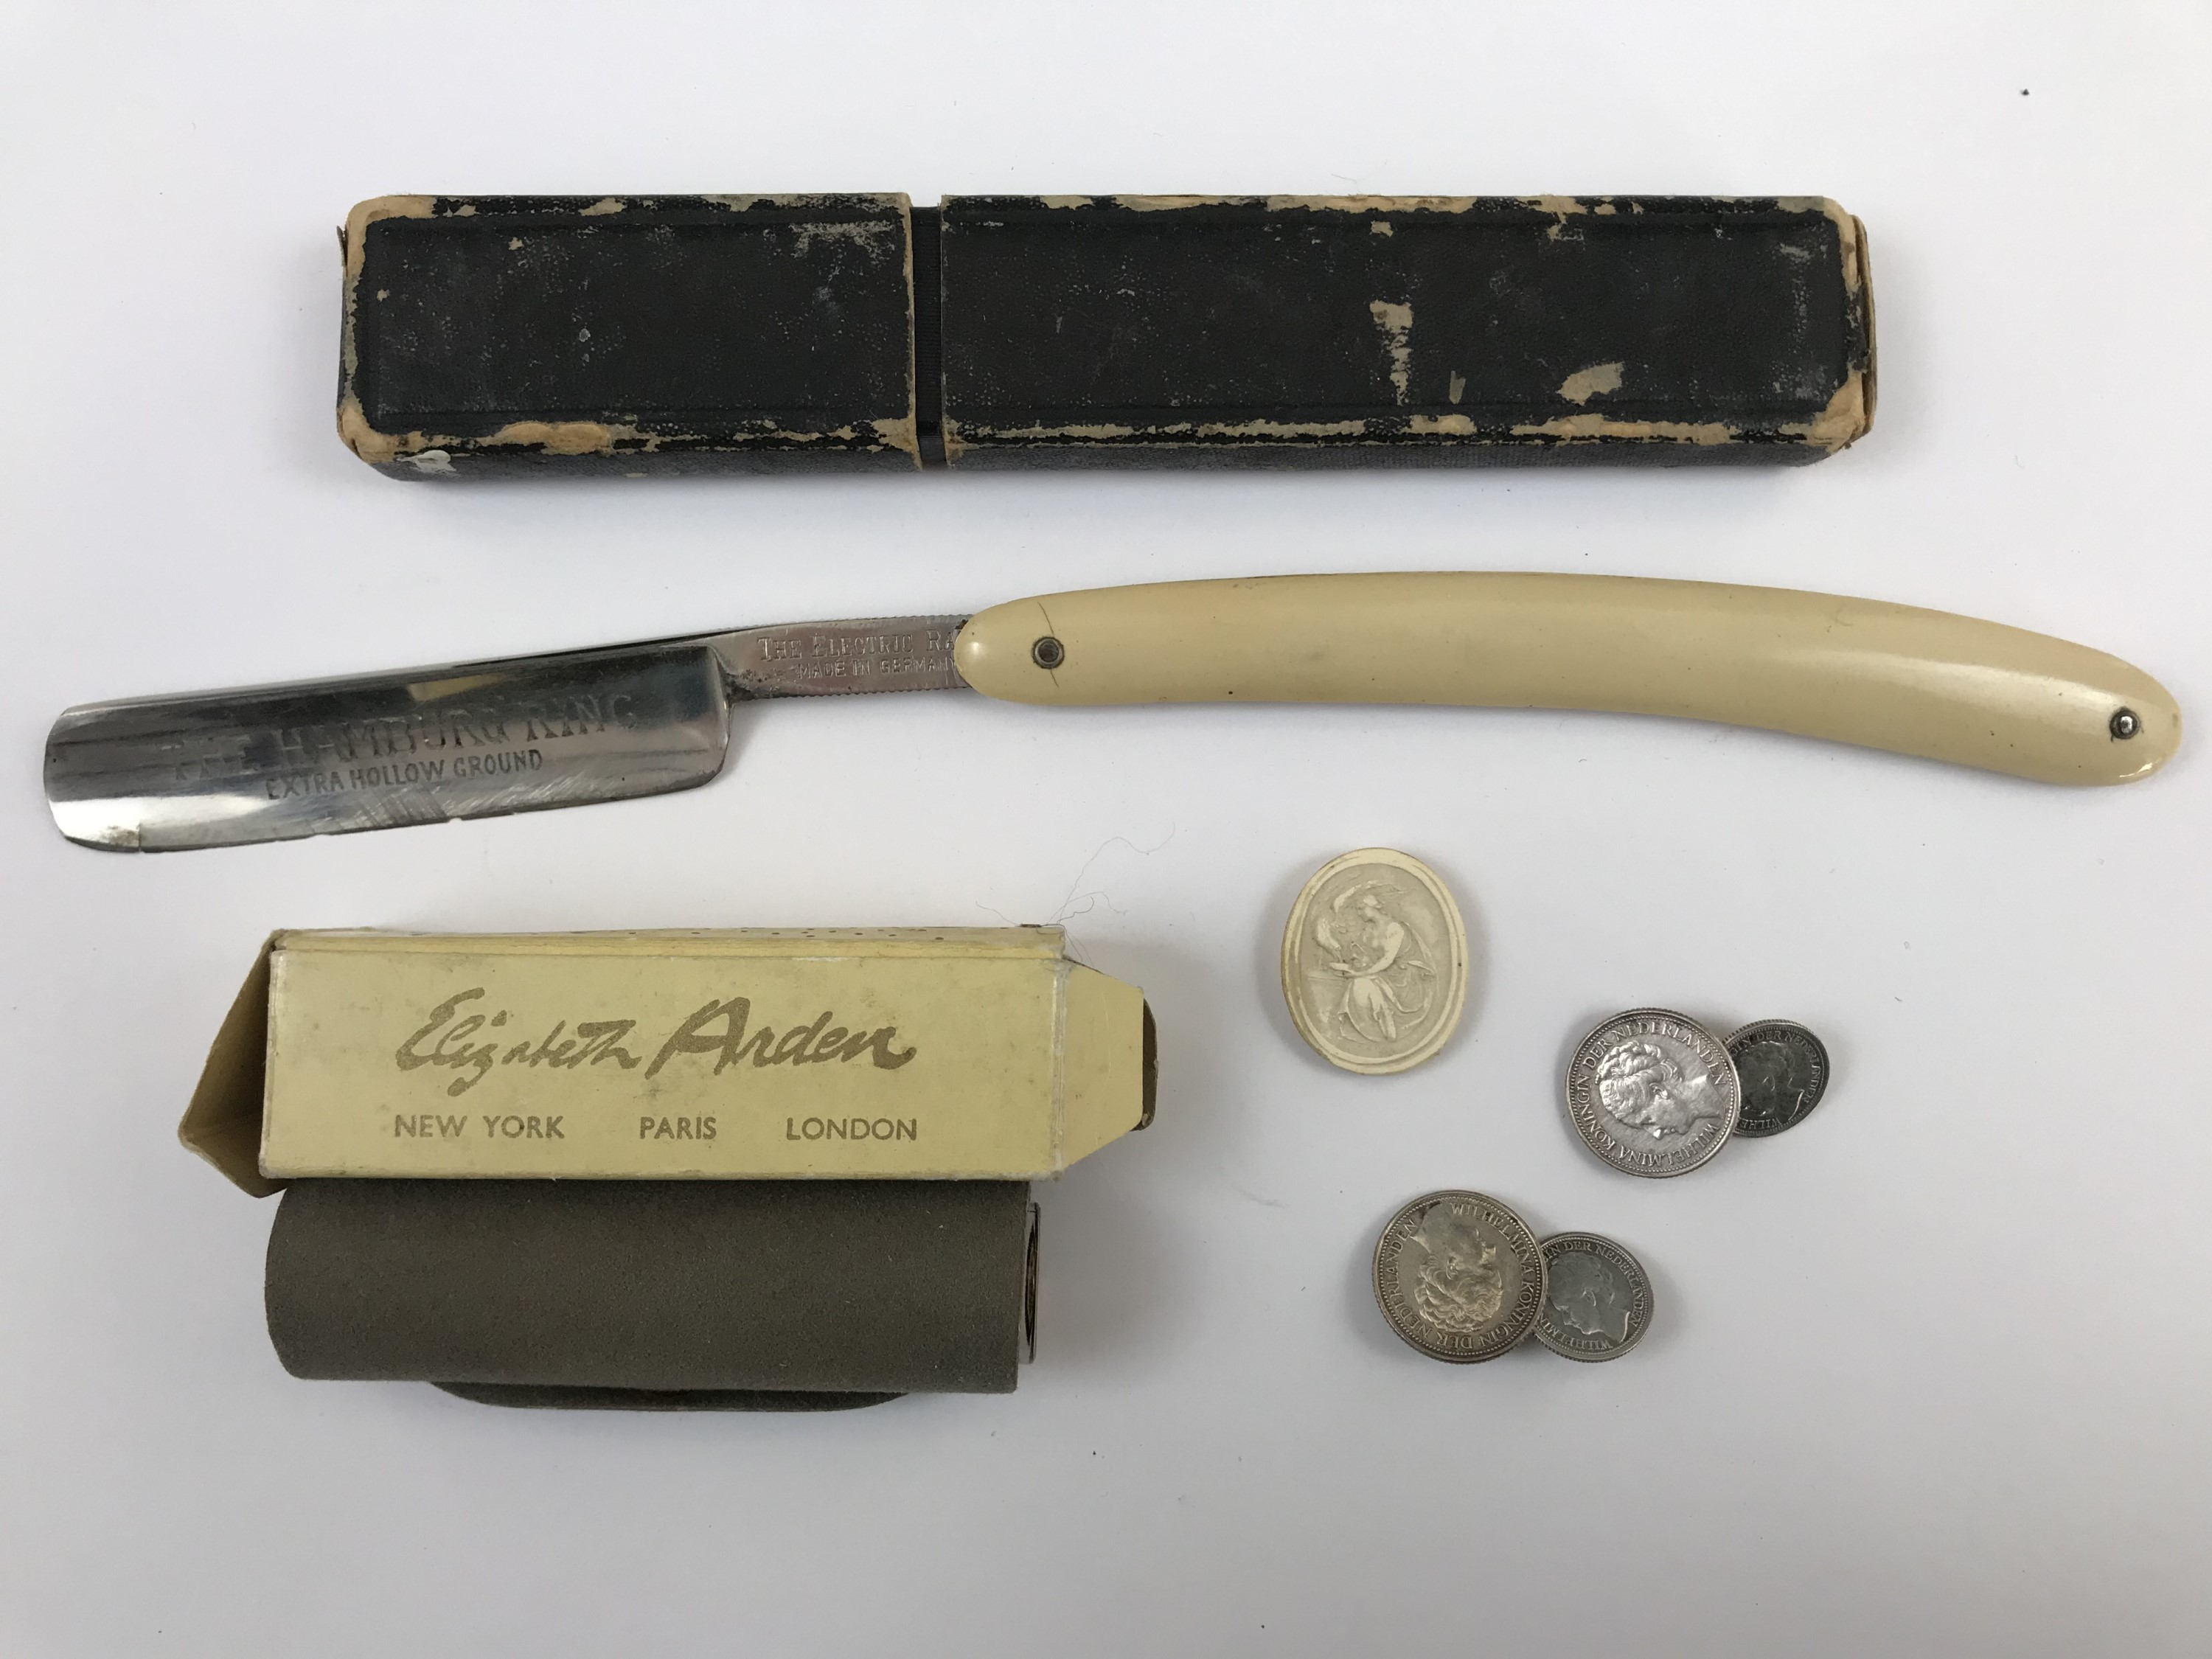 Lot 55 - Collectors' items including a cased cutthroat razor, a boxed Elizabeth Arden scent bottle / perfume,